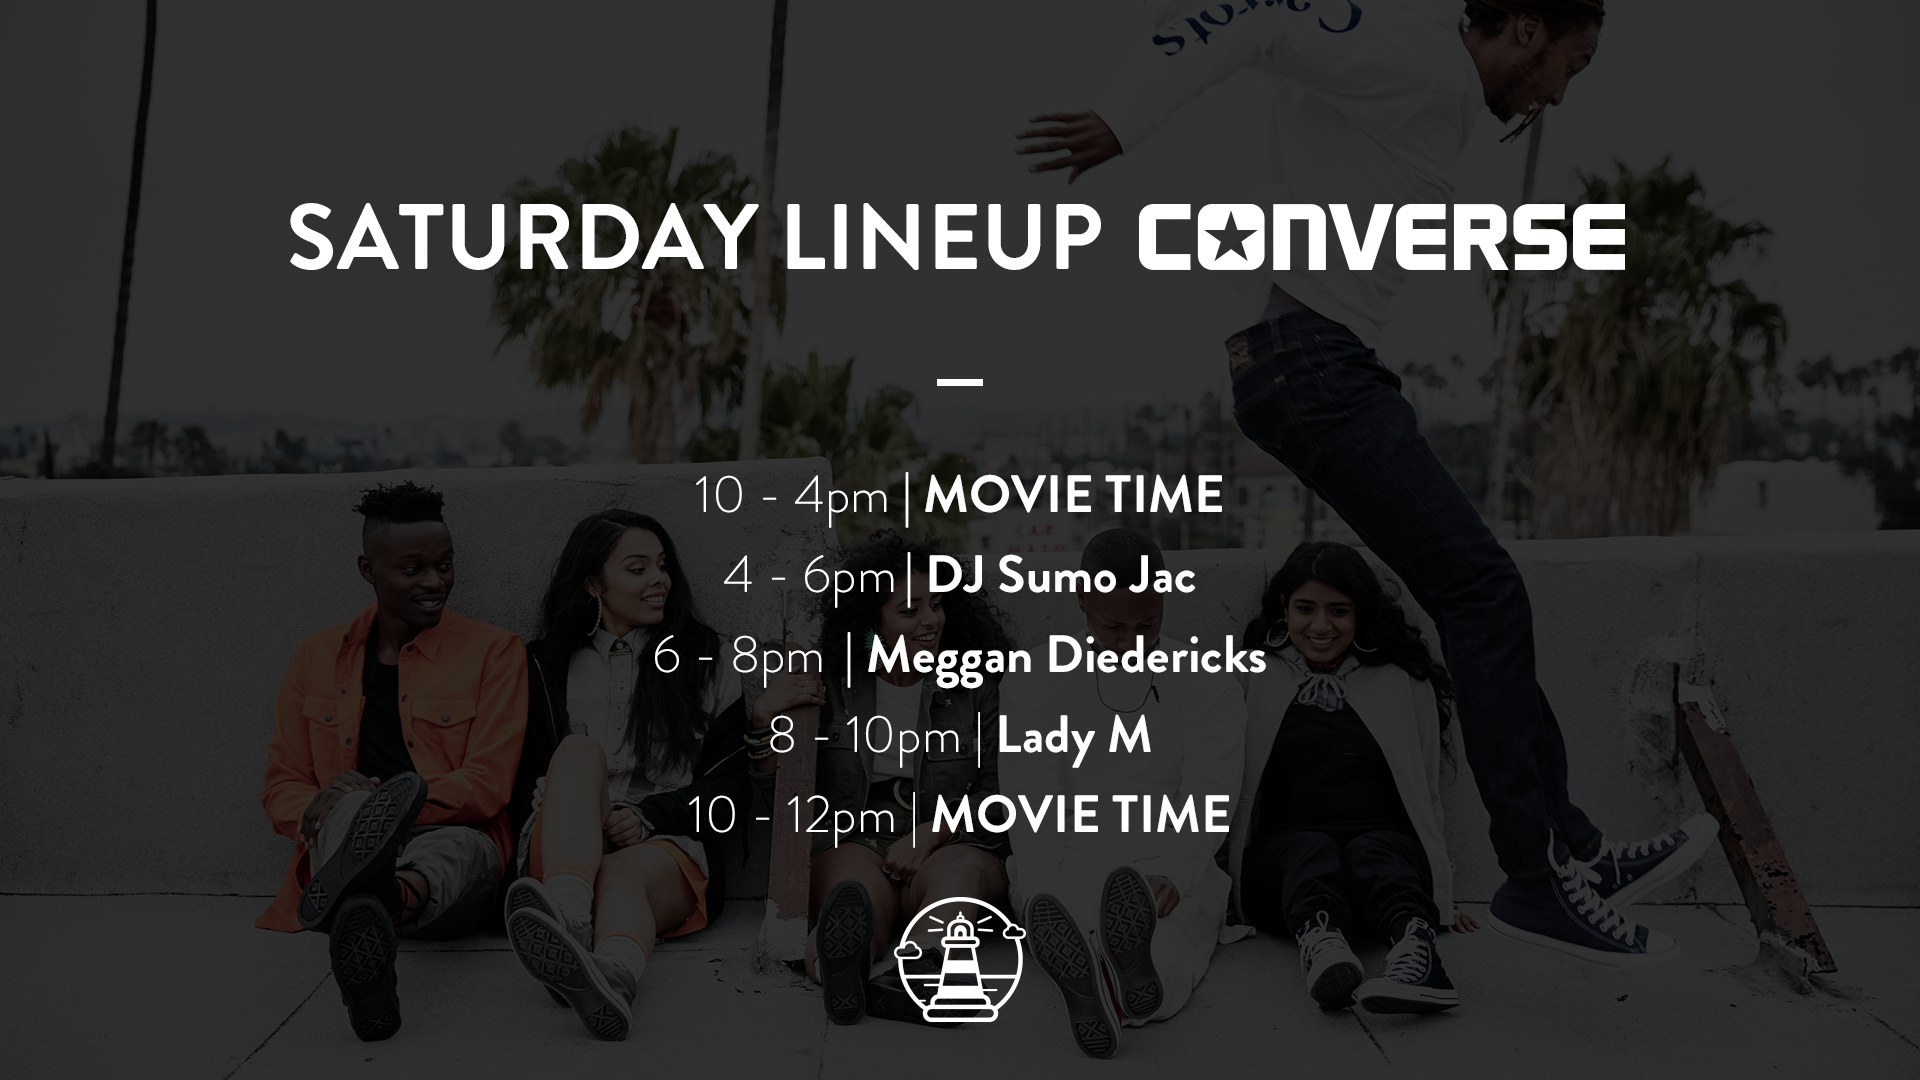 Converse-screen-lineup-artwork-5.png